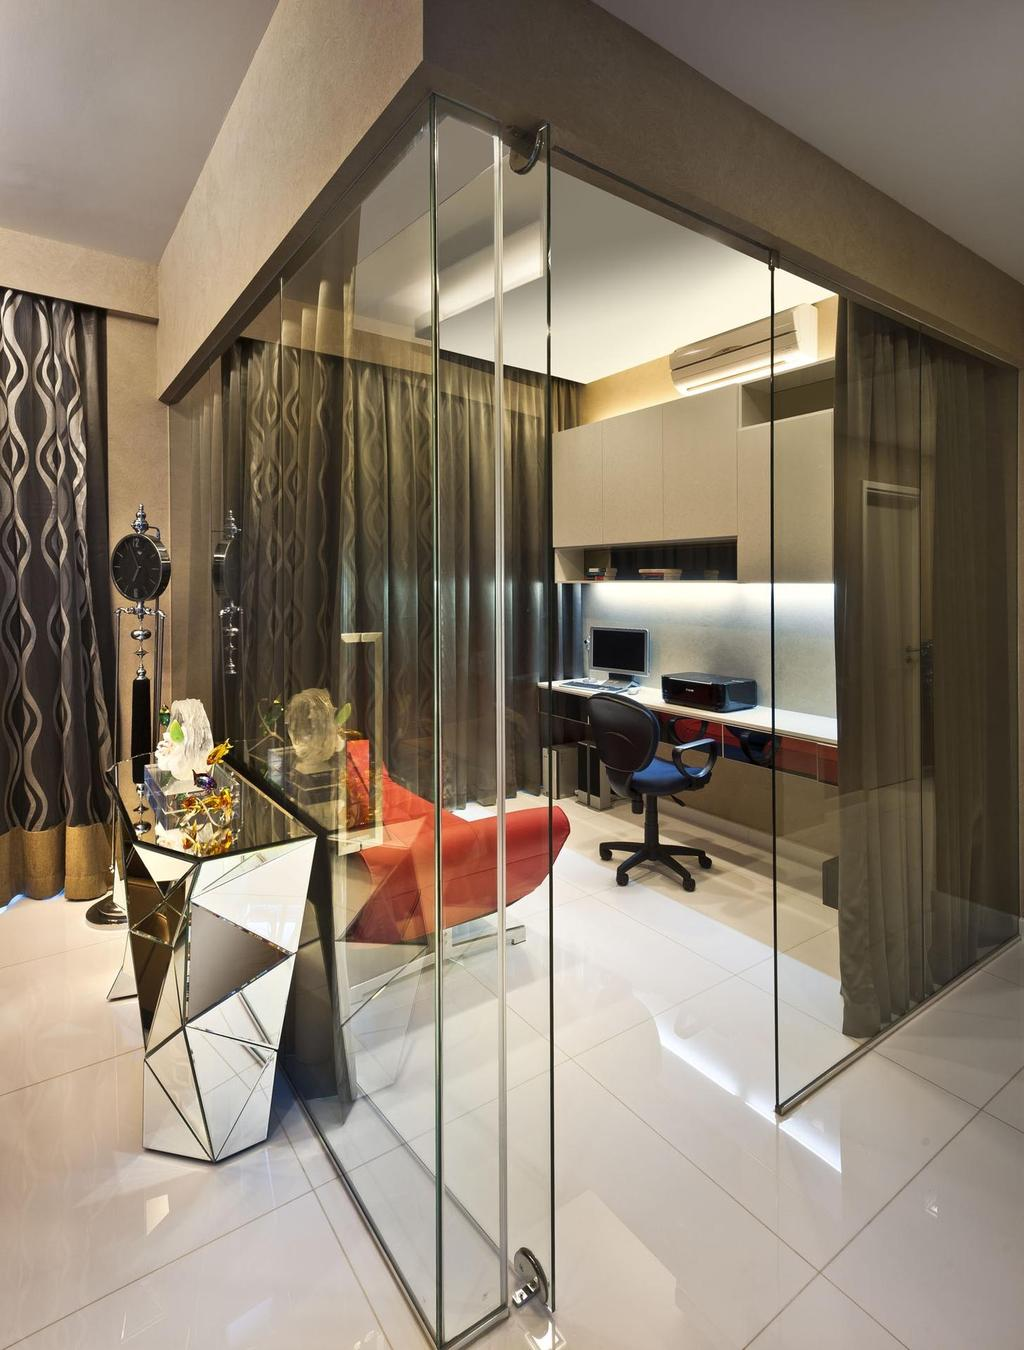 Contemporary, Condo, Study, Cascadia, Interior Designer, Space Vision Design, Tile, Tiles, Display Table, Geometric, Mirror, Table, Mounted Table, Study Table, Cabinet, Glass Room, Glass Wall, Collage, Poster, HDB, Building, Housing, Indoors